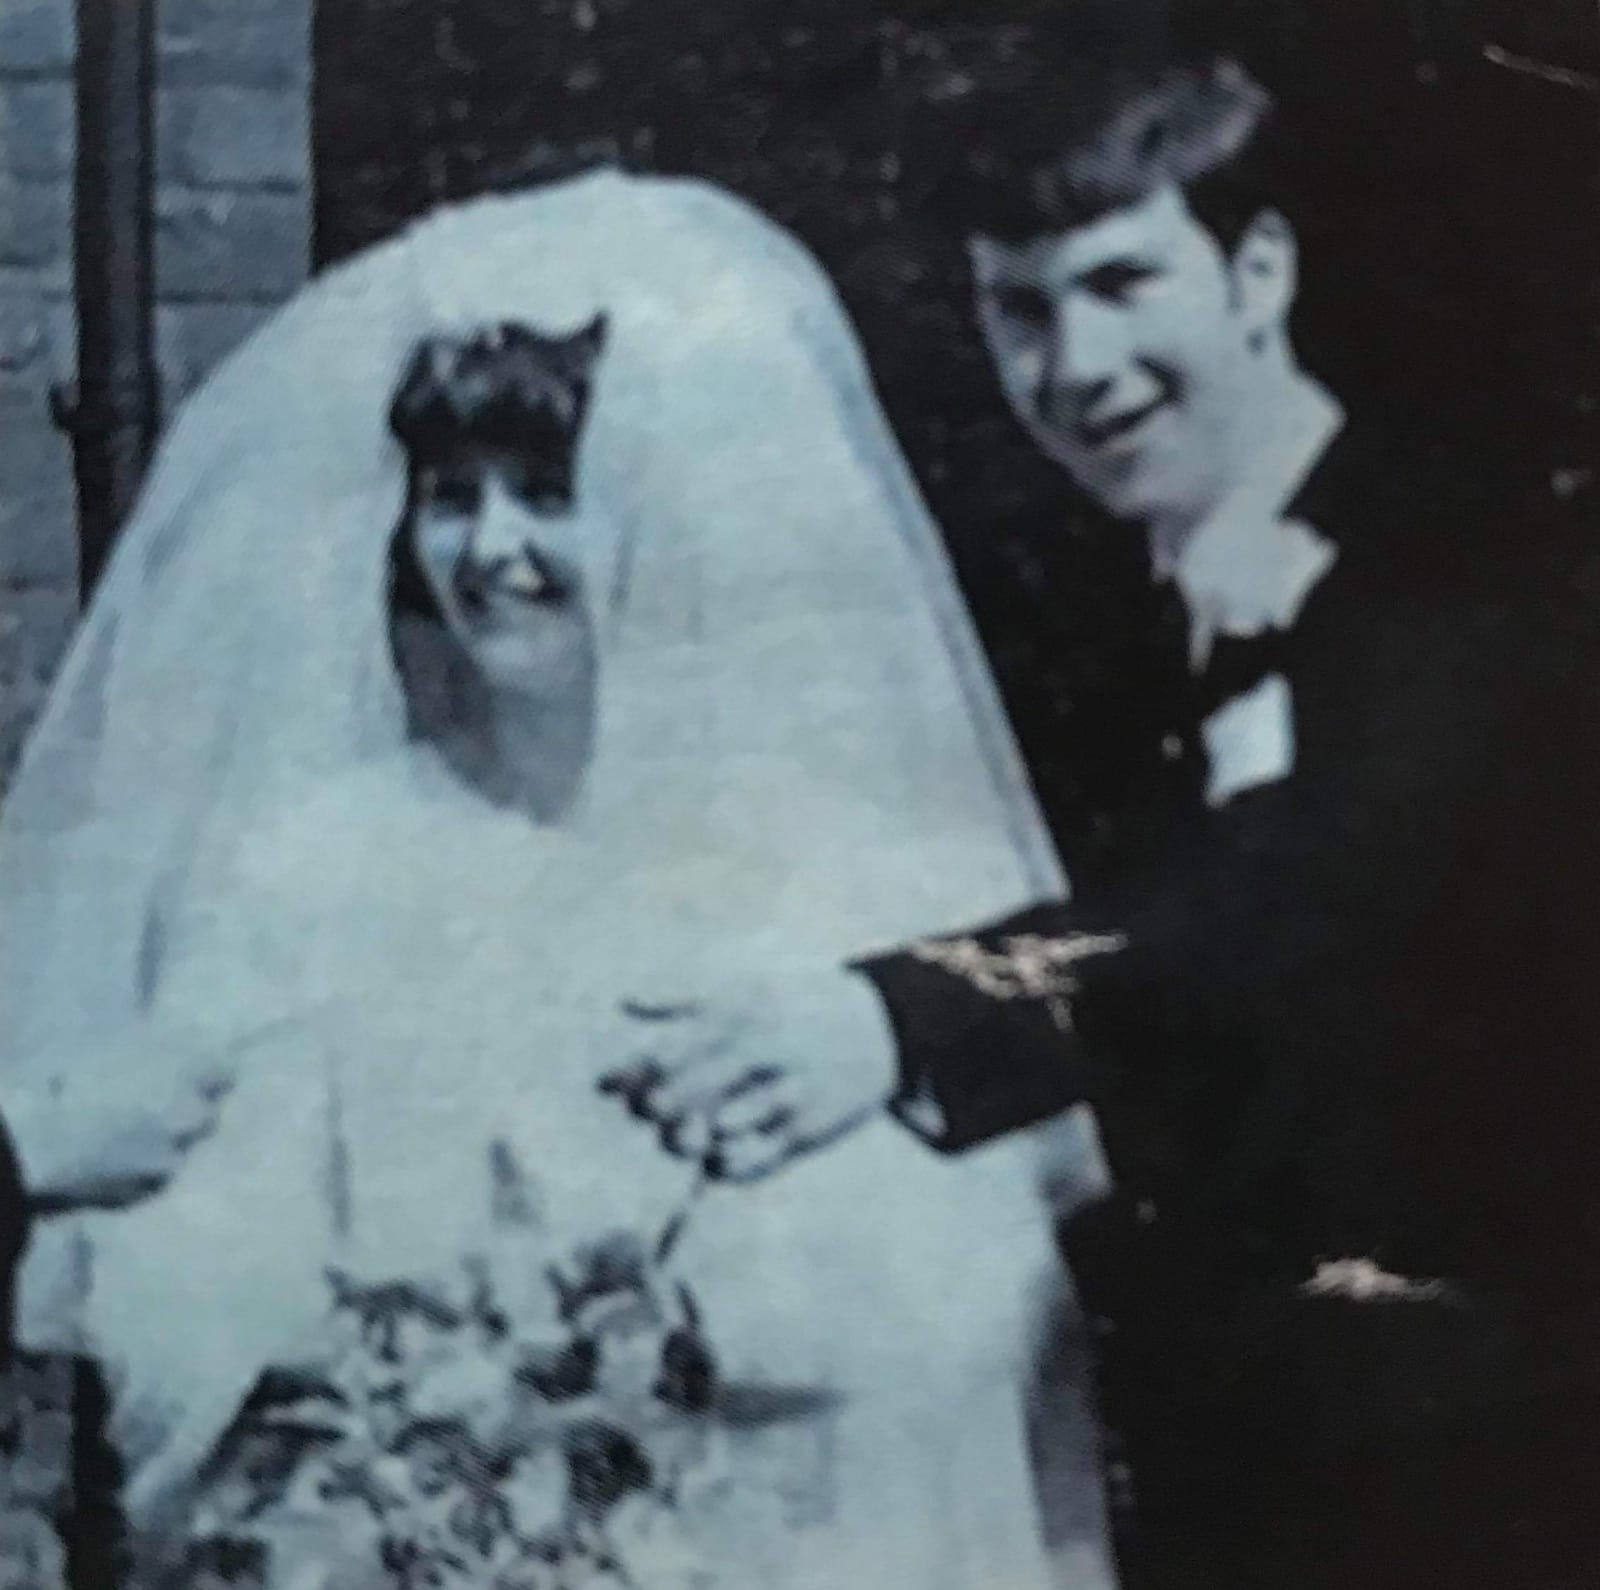 *Tony and Linda on their wedding day in 1969.